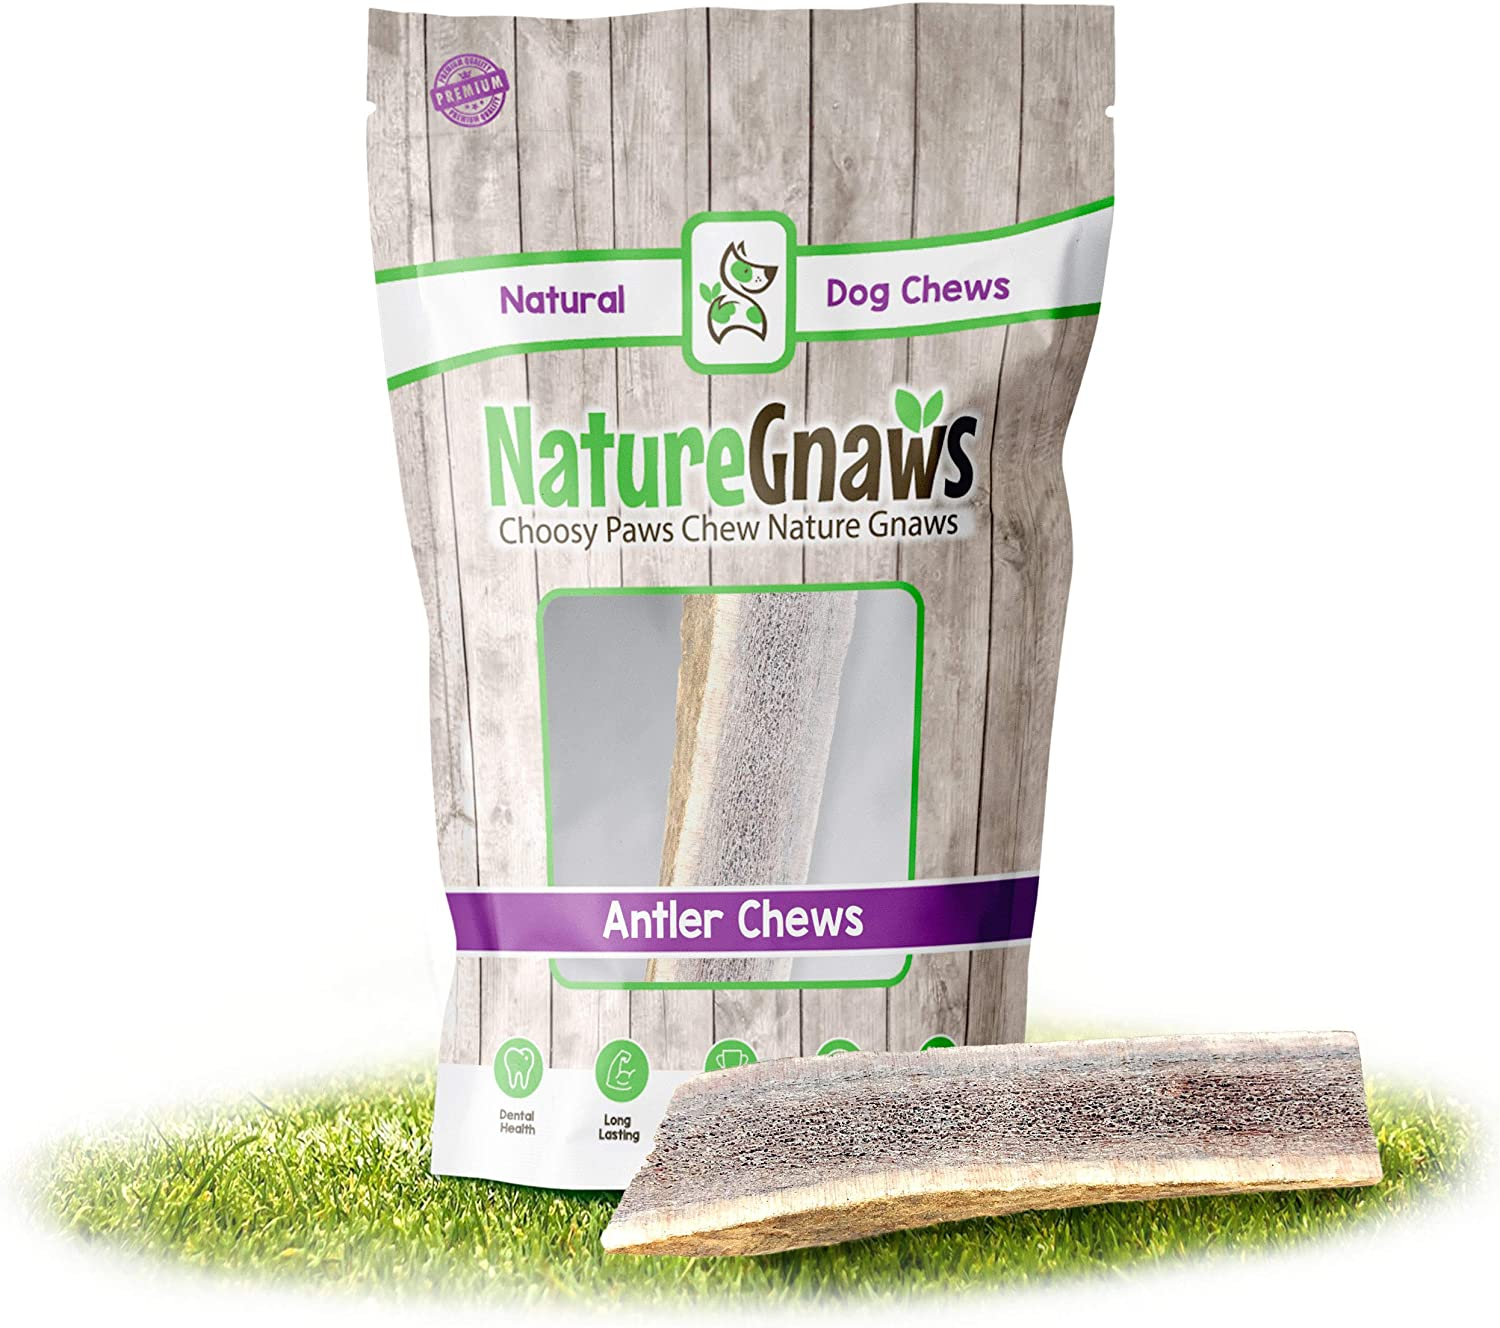 Nature Gnaws Elk Antlers for Large Dogs - Premium Natural USA Antler Chews - Long Lasting Dog Bones for Aggressive Chewers - Mix of Split and Whole - 5-8 Inch